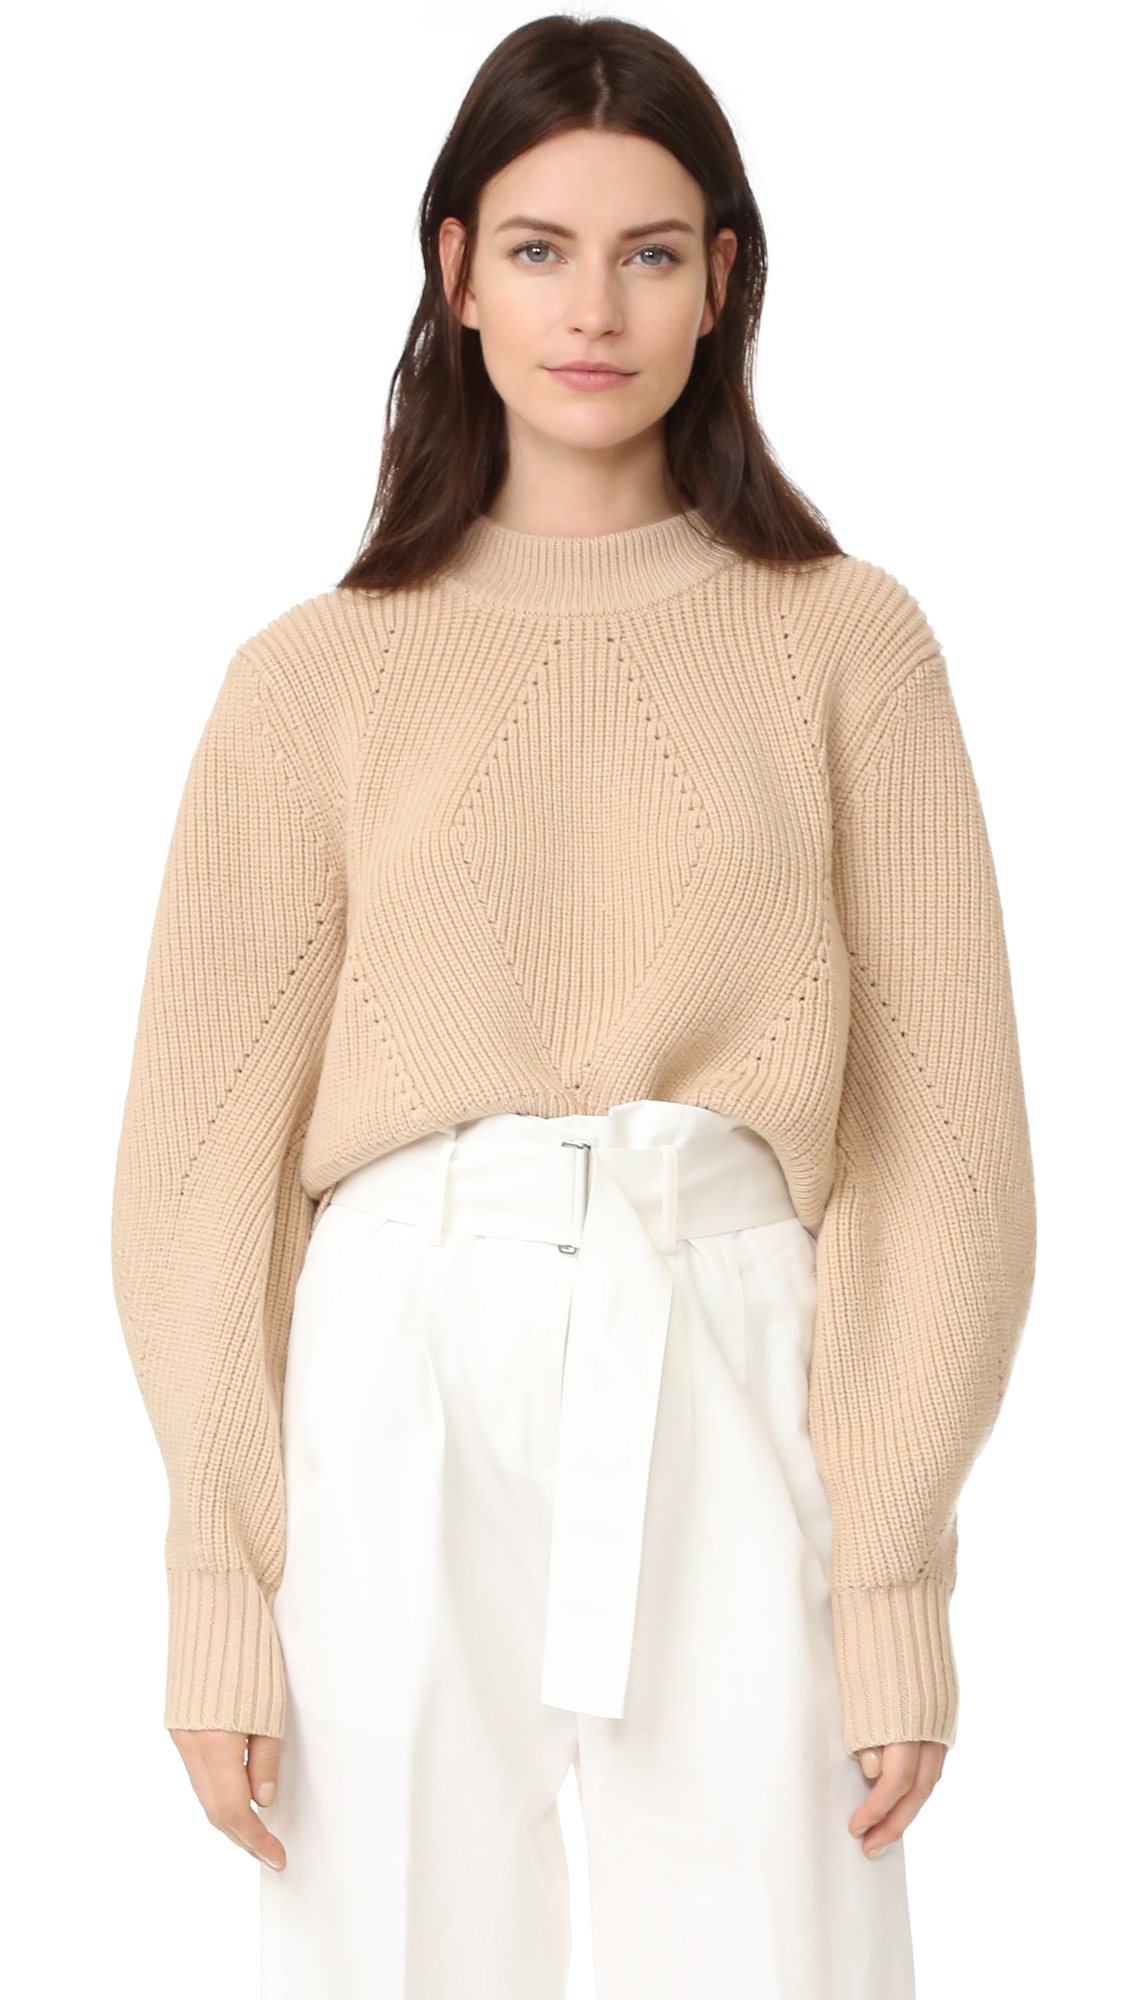 Dkny Extra Long Sleeve Pullover With Back Opening - Nude at Shopbop